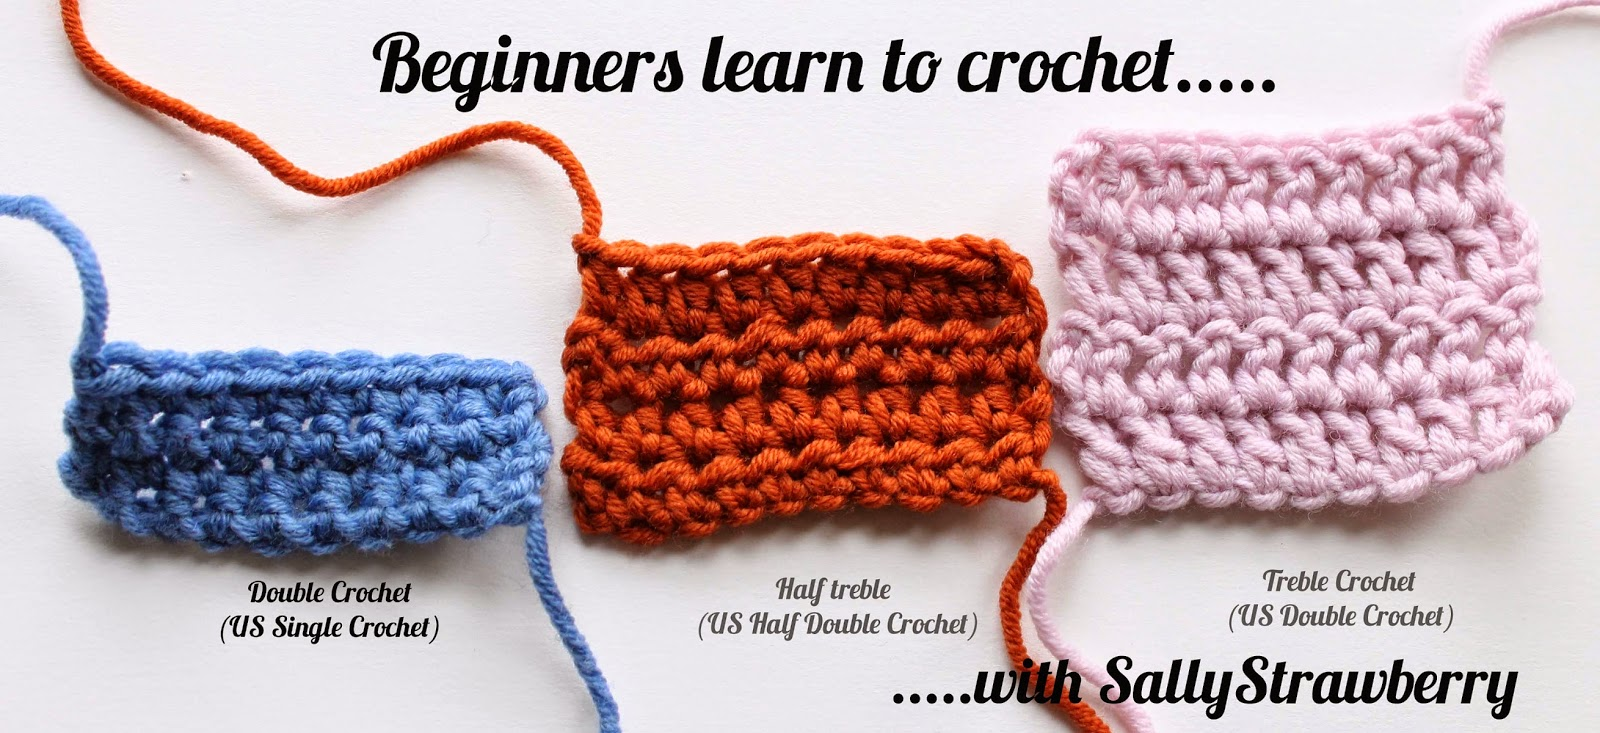 Crochet Stitch Patterns For Beginners : SallyStrawberry: Learn to Crochet: Double Crochet